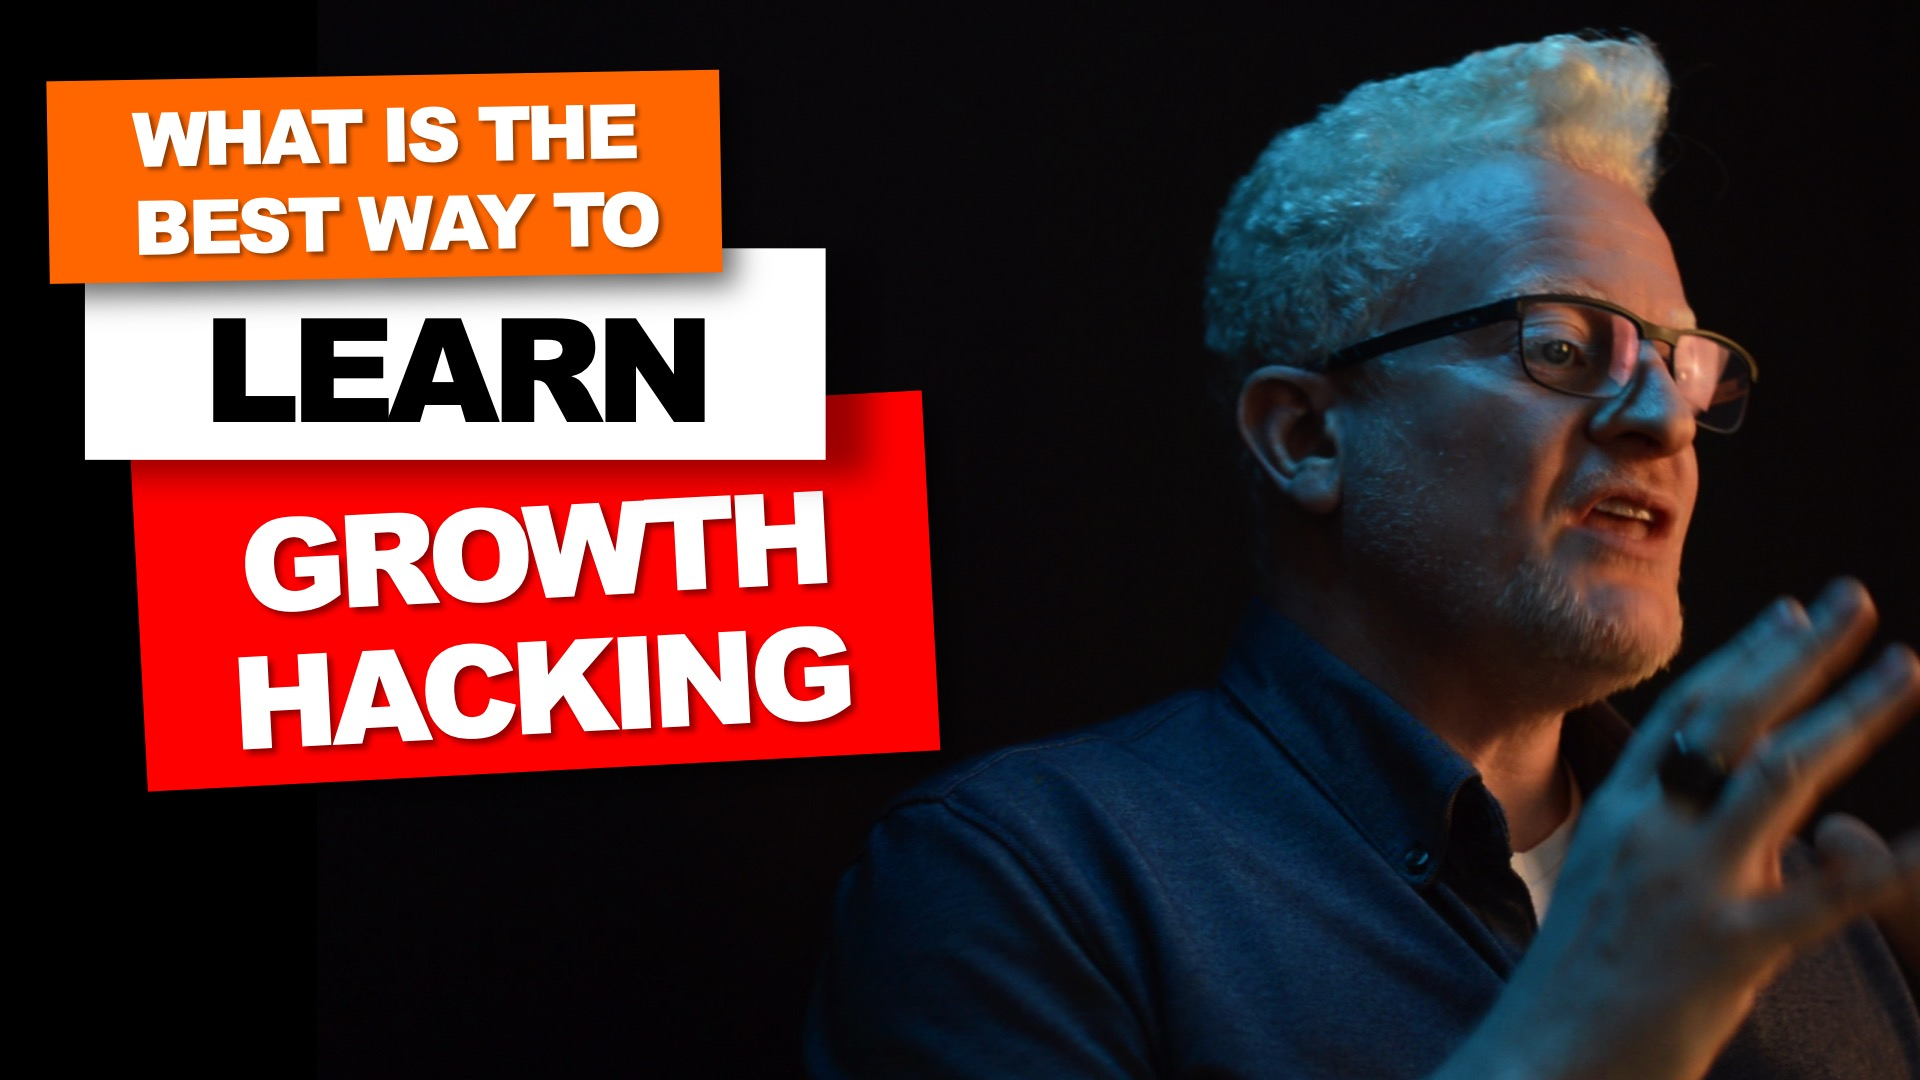 Learning Growth Hacking